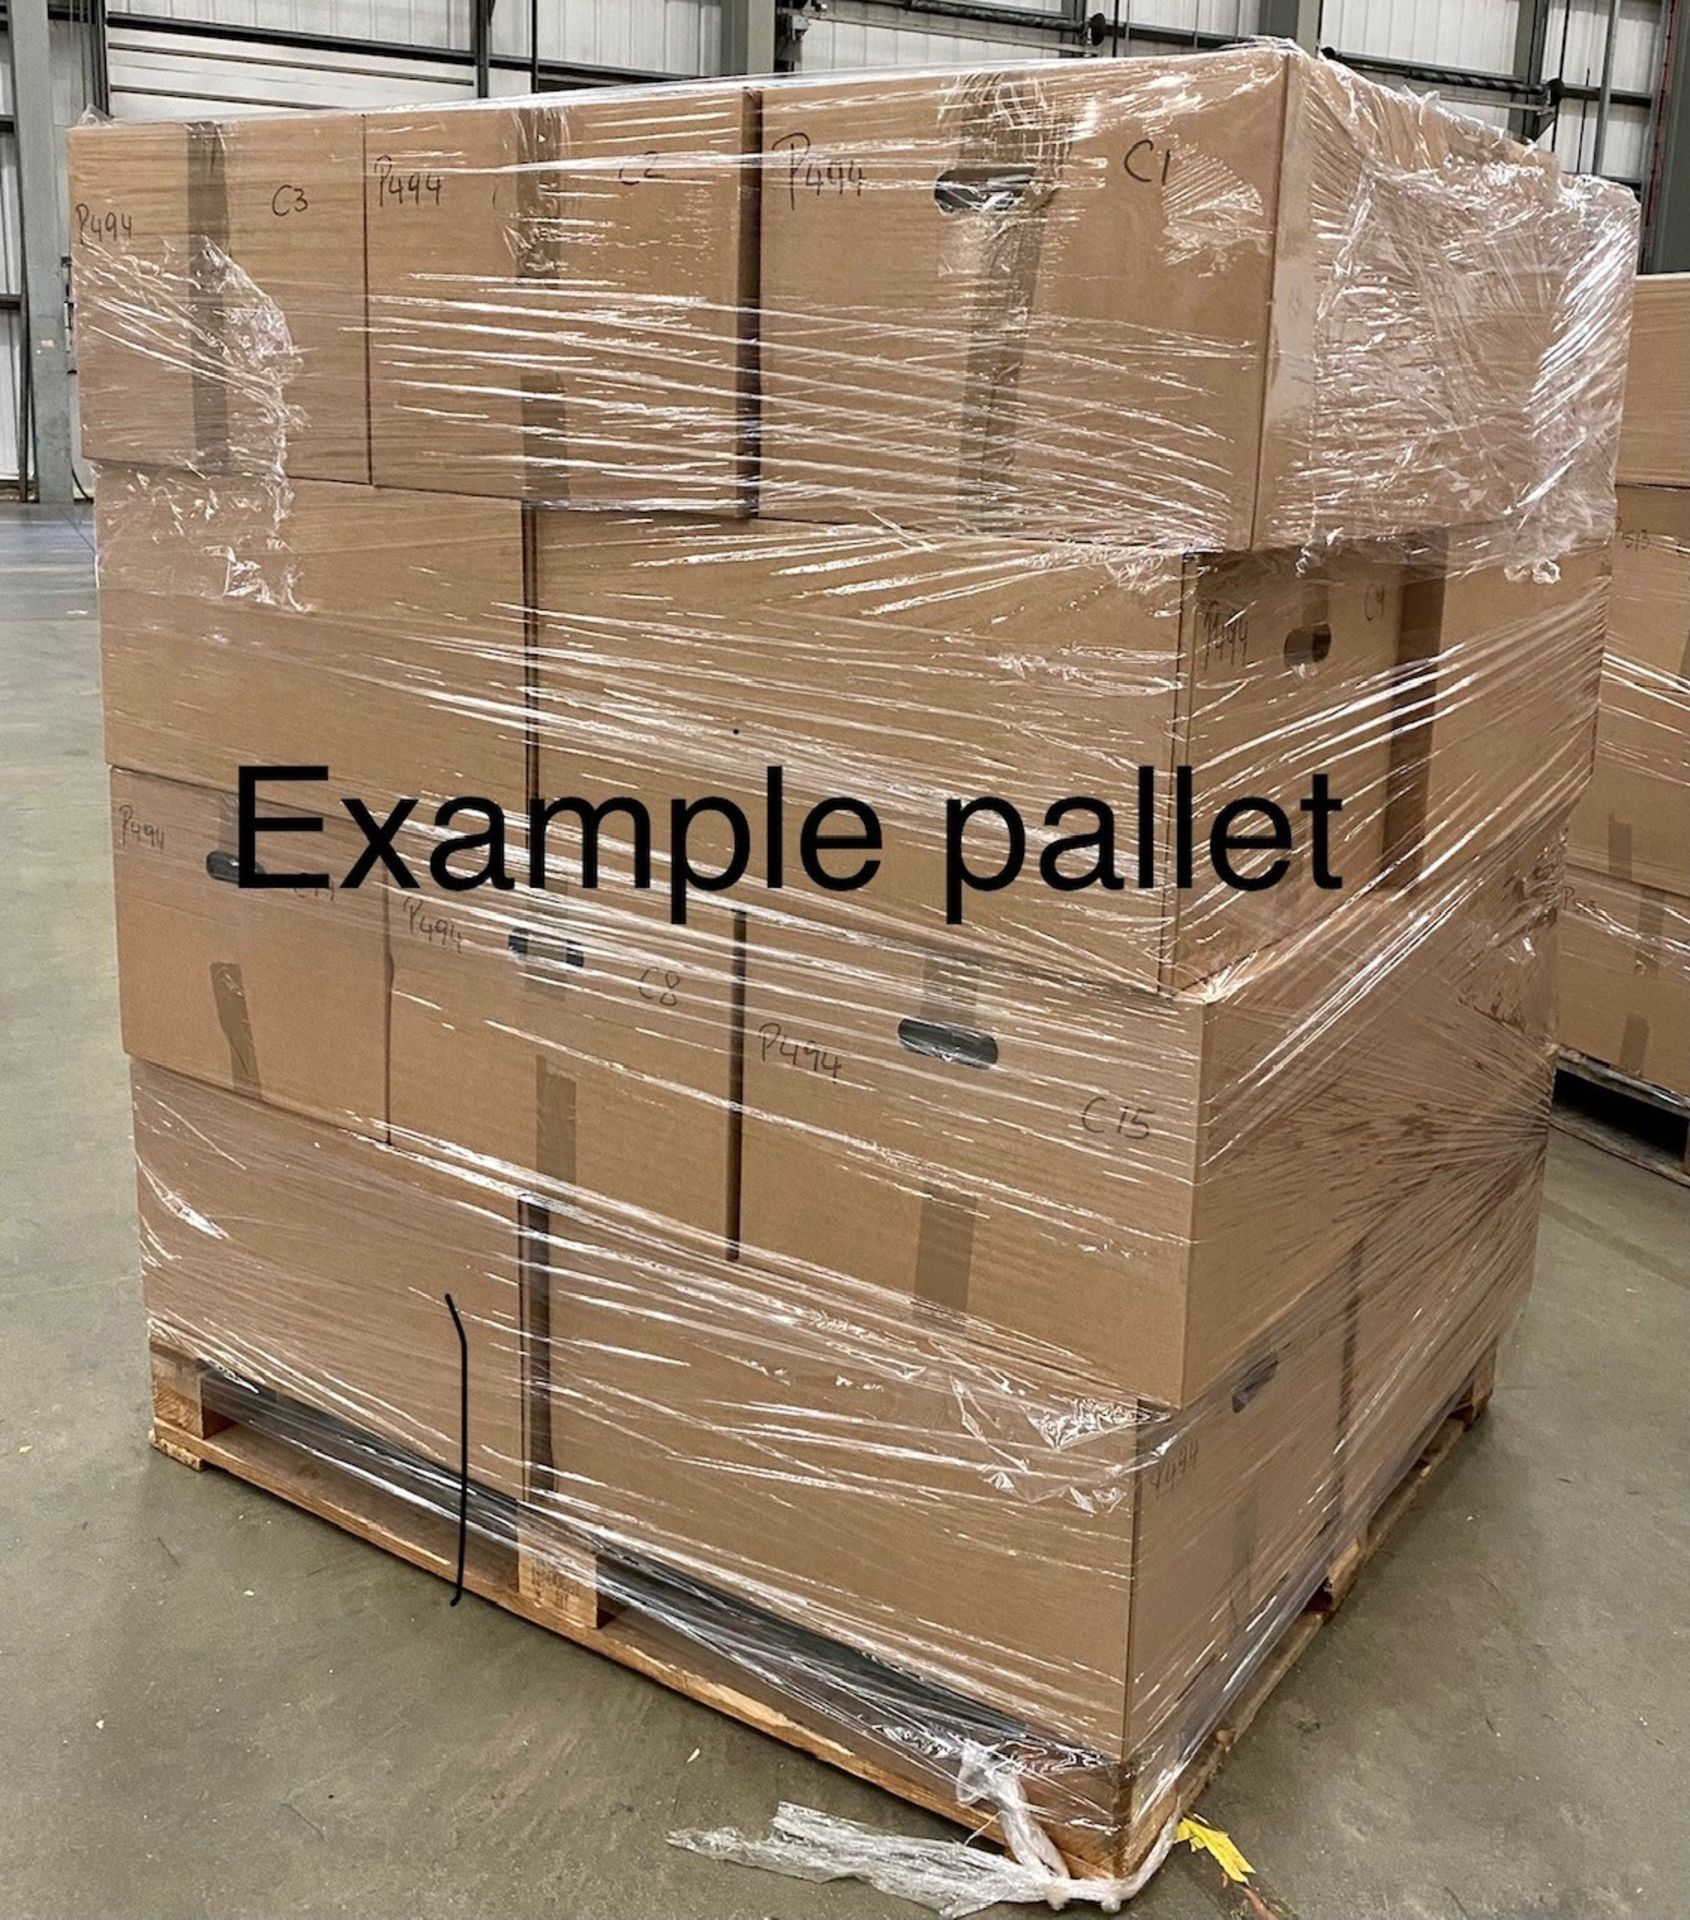 1 x mixed pallet = 274 items of Grade A M&S Womenswear Clothing. Total RRP £7802.50 - Image 13 of 13